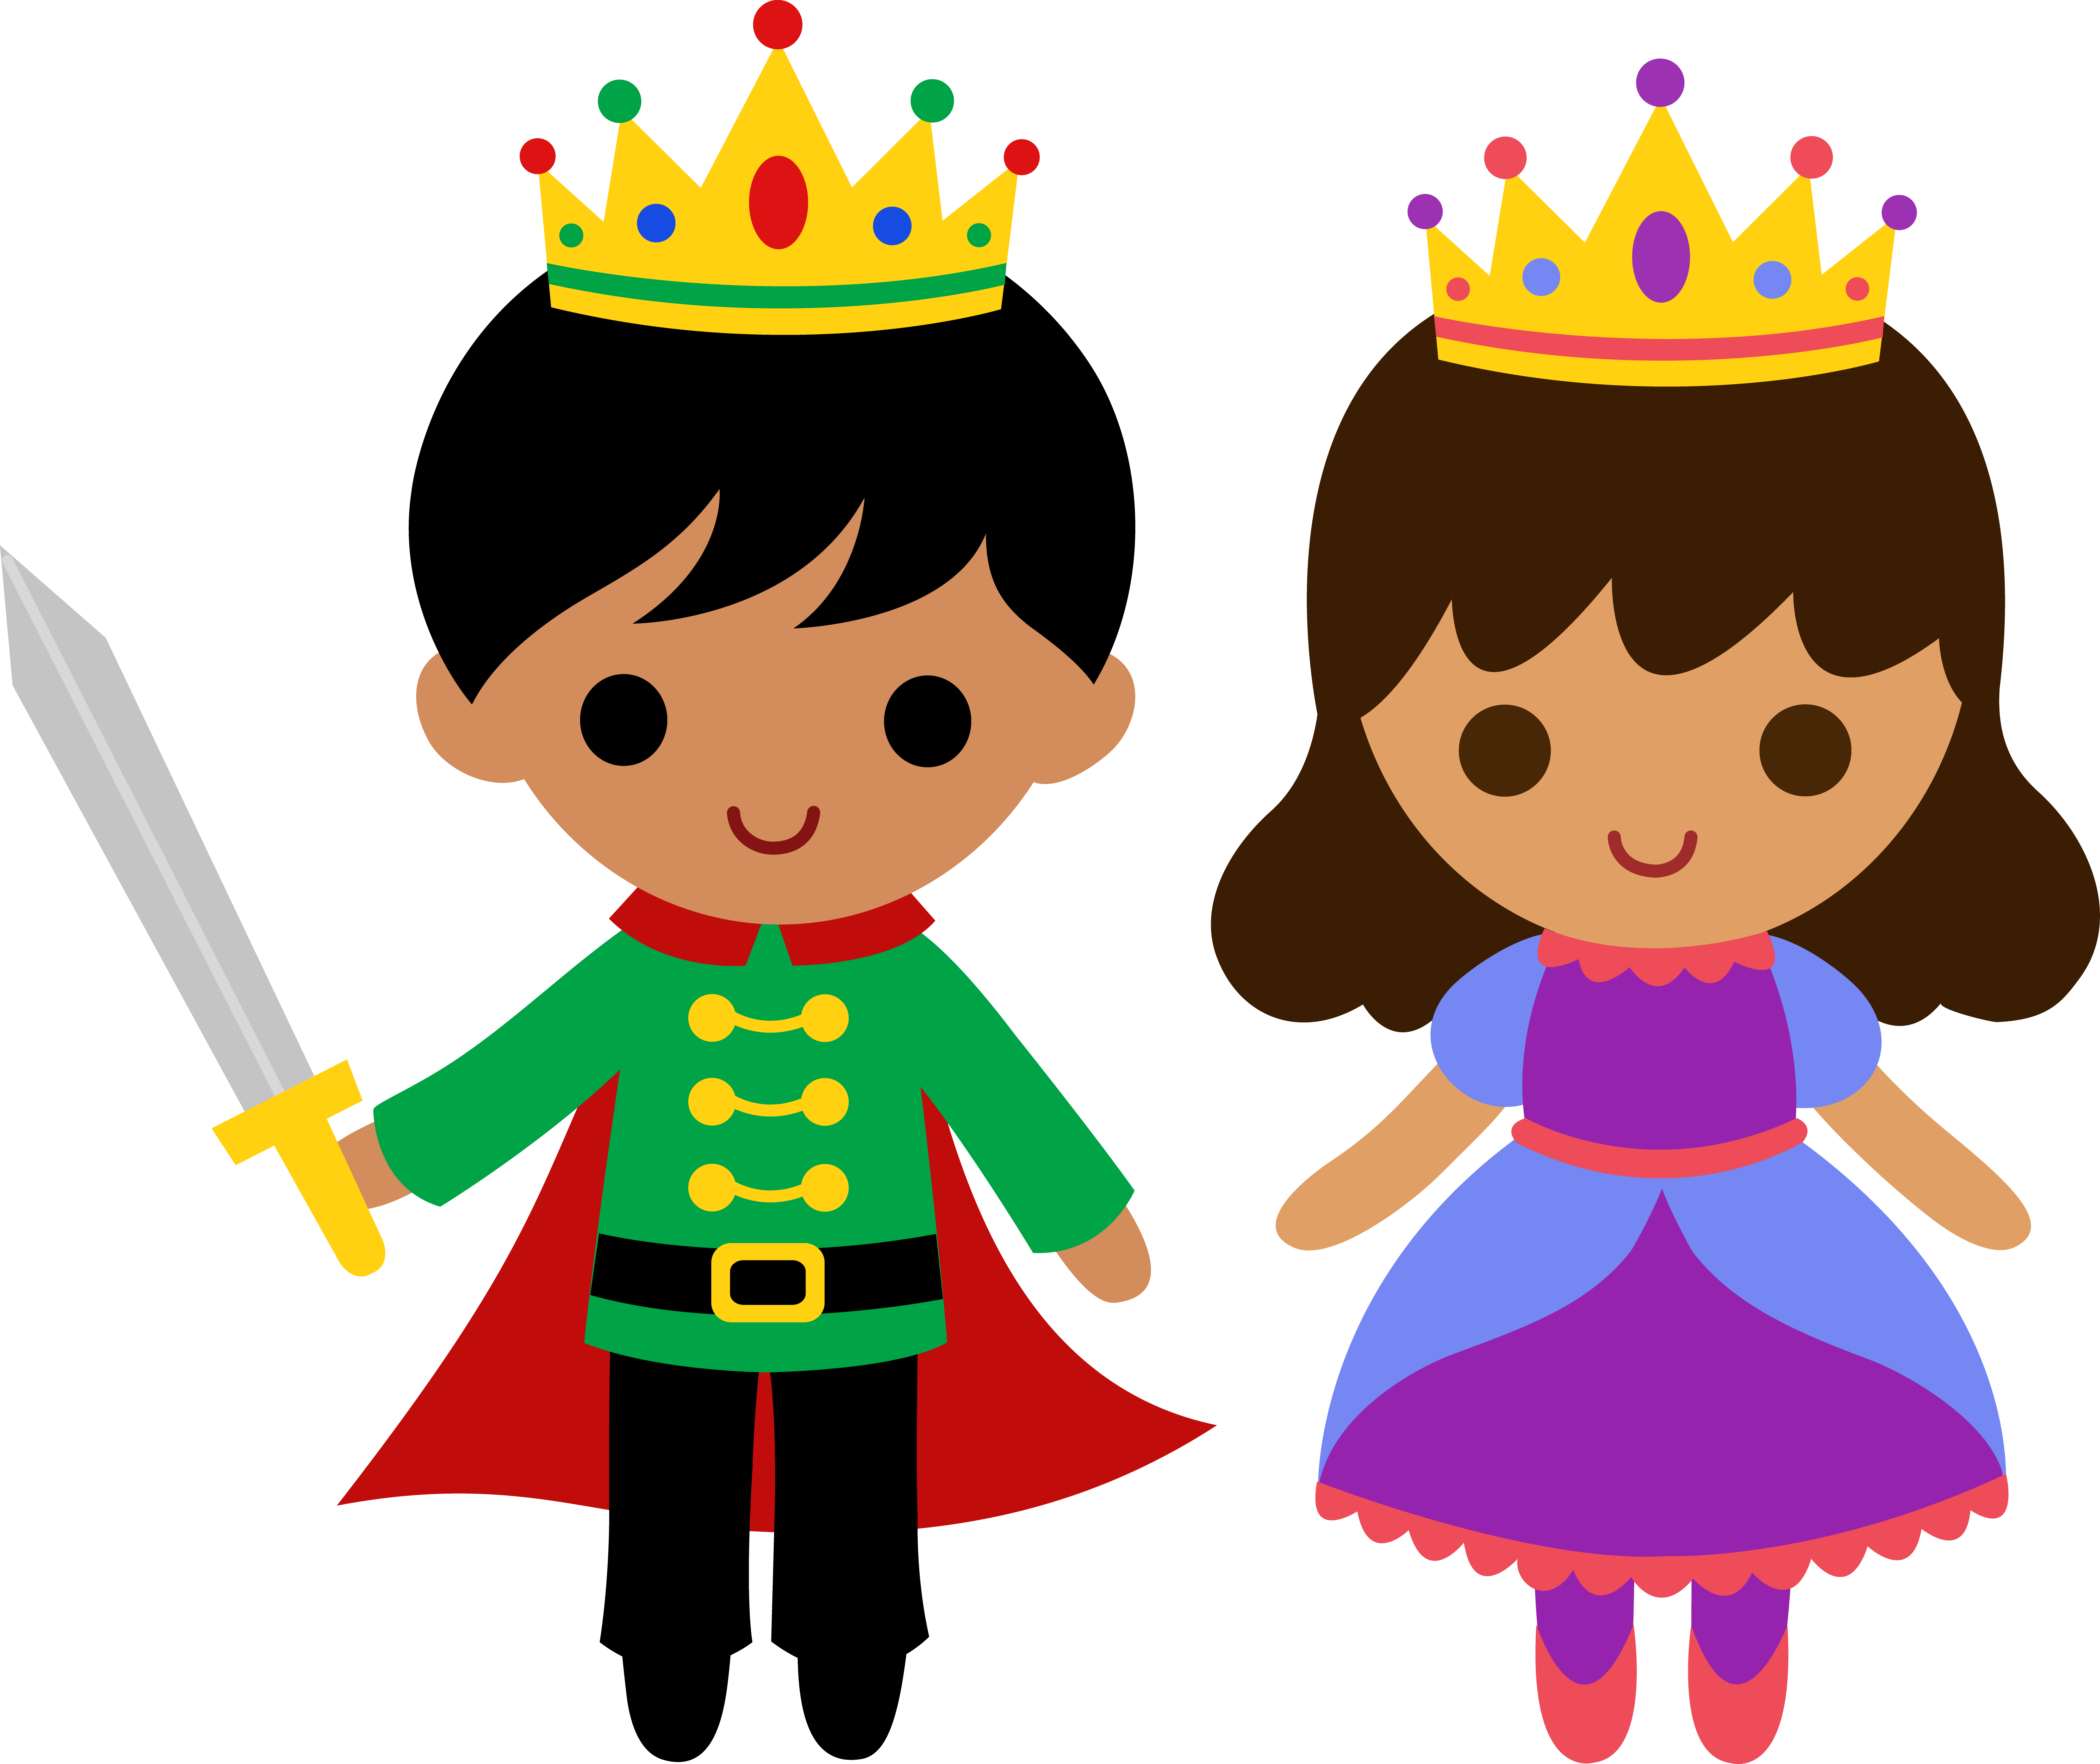 Free clipart prince. Cute and princess clip